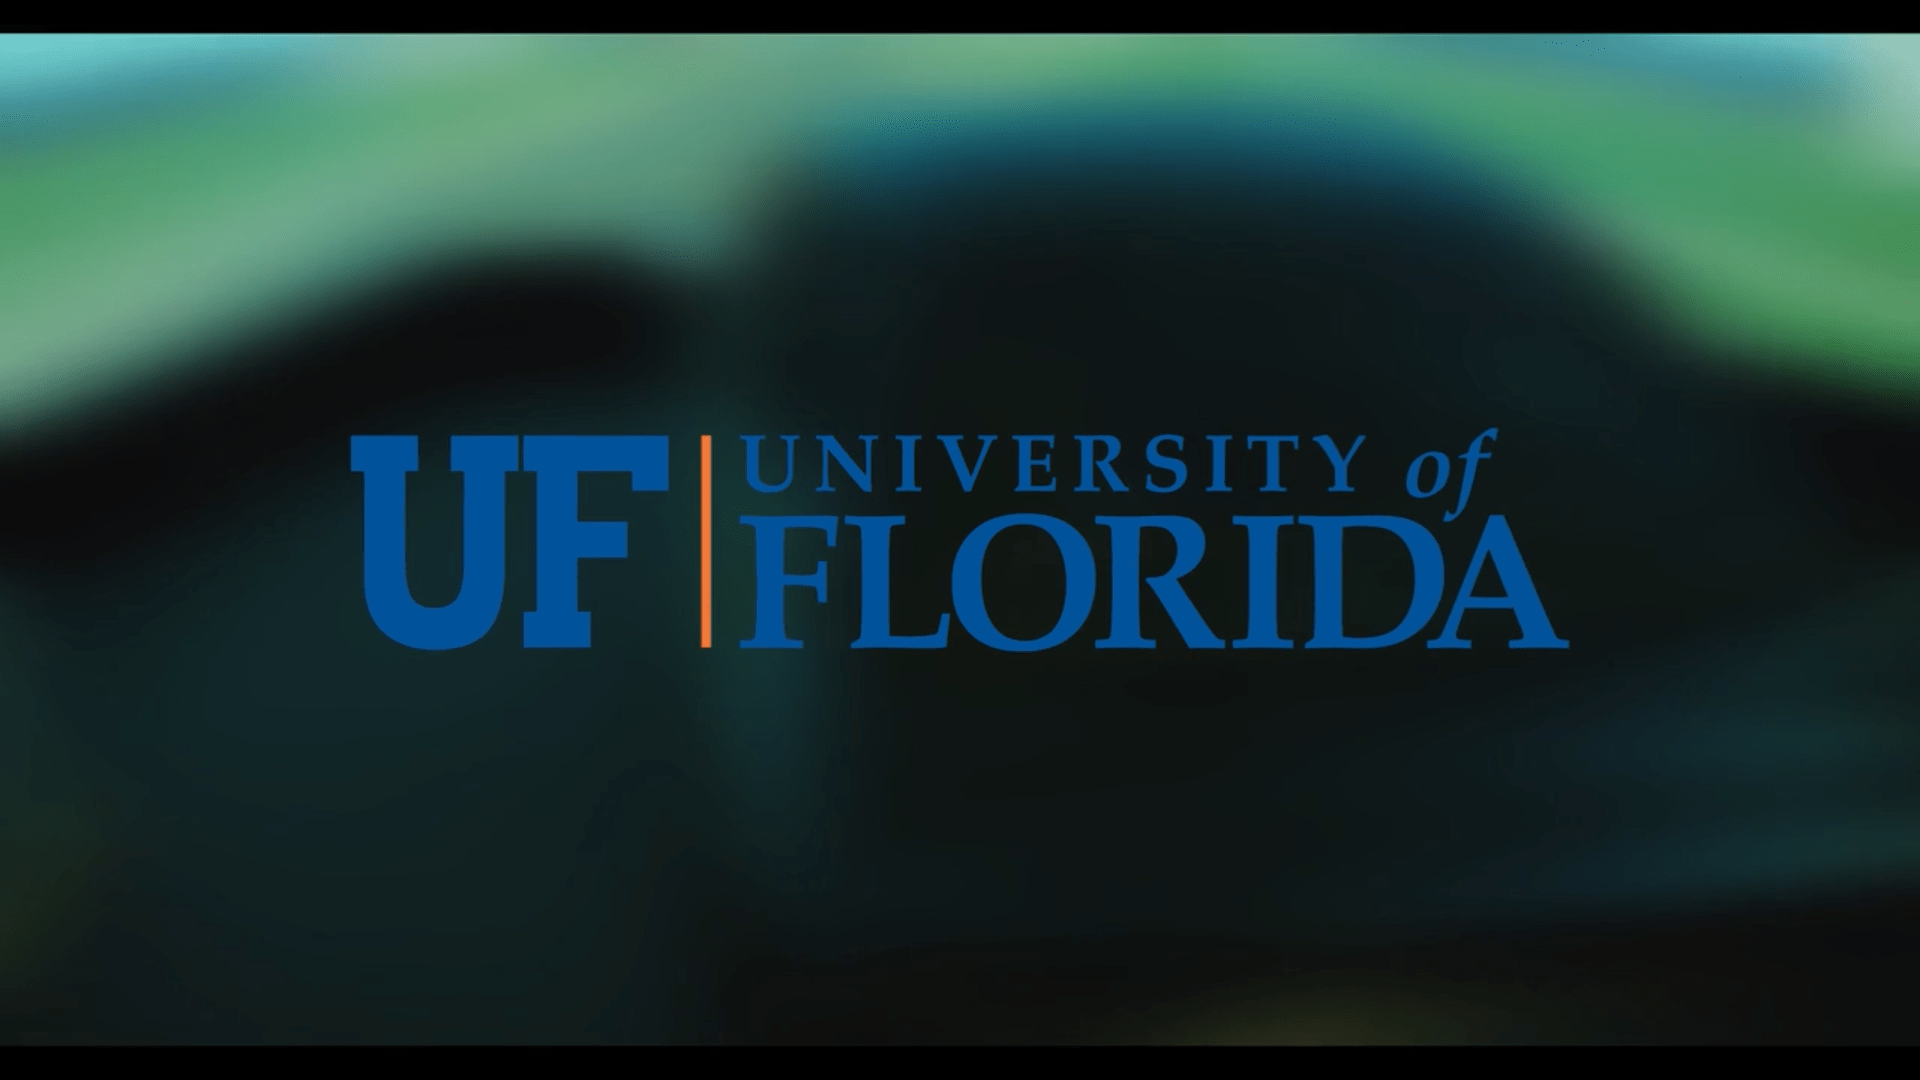 University of Florida Driver Simulation Training Video Poster